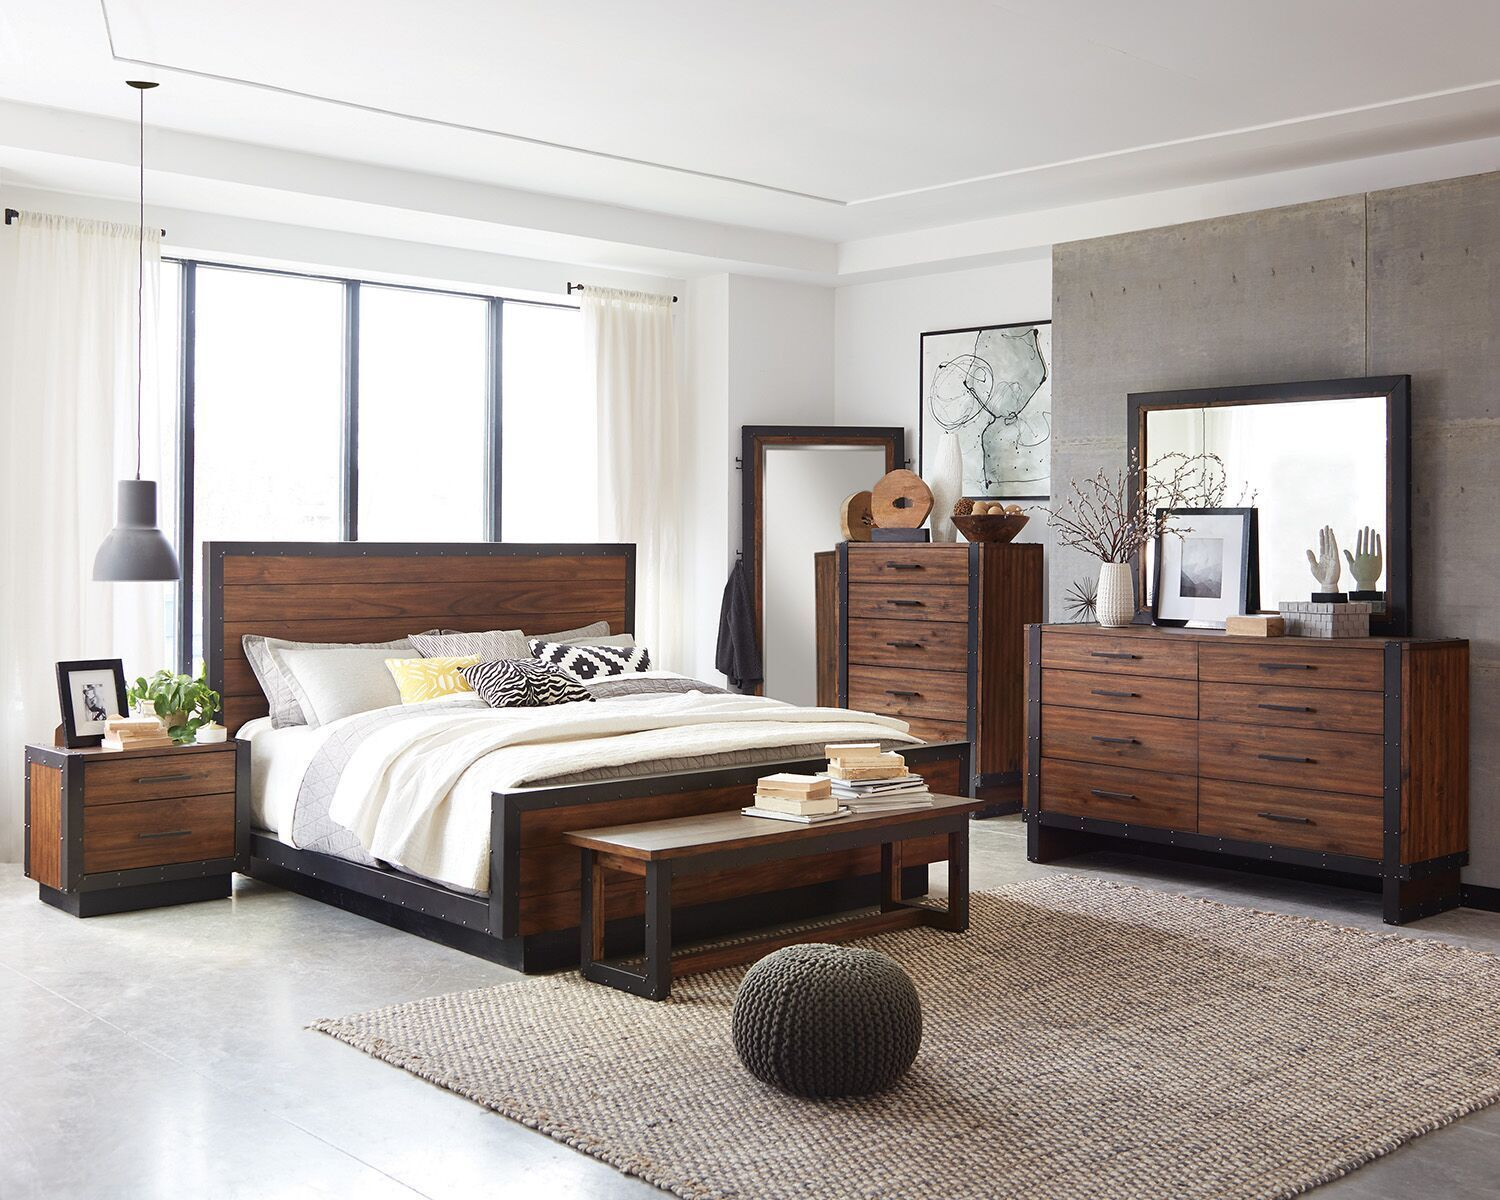 This Is An Amazing Bed Designed By The Scott Brothers From The